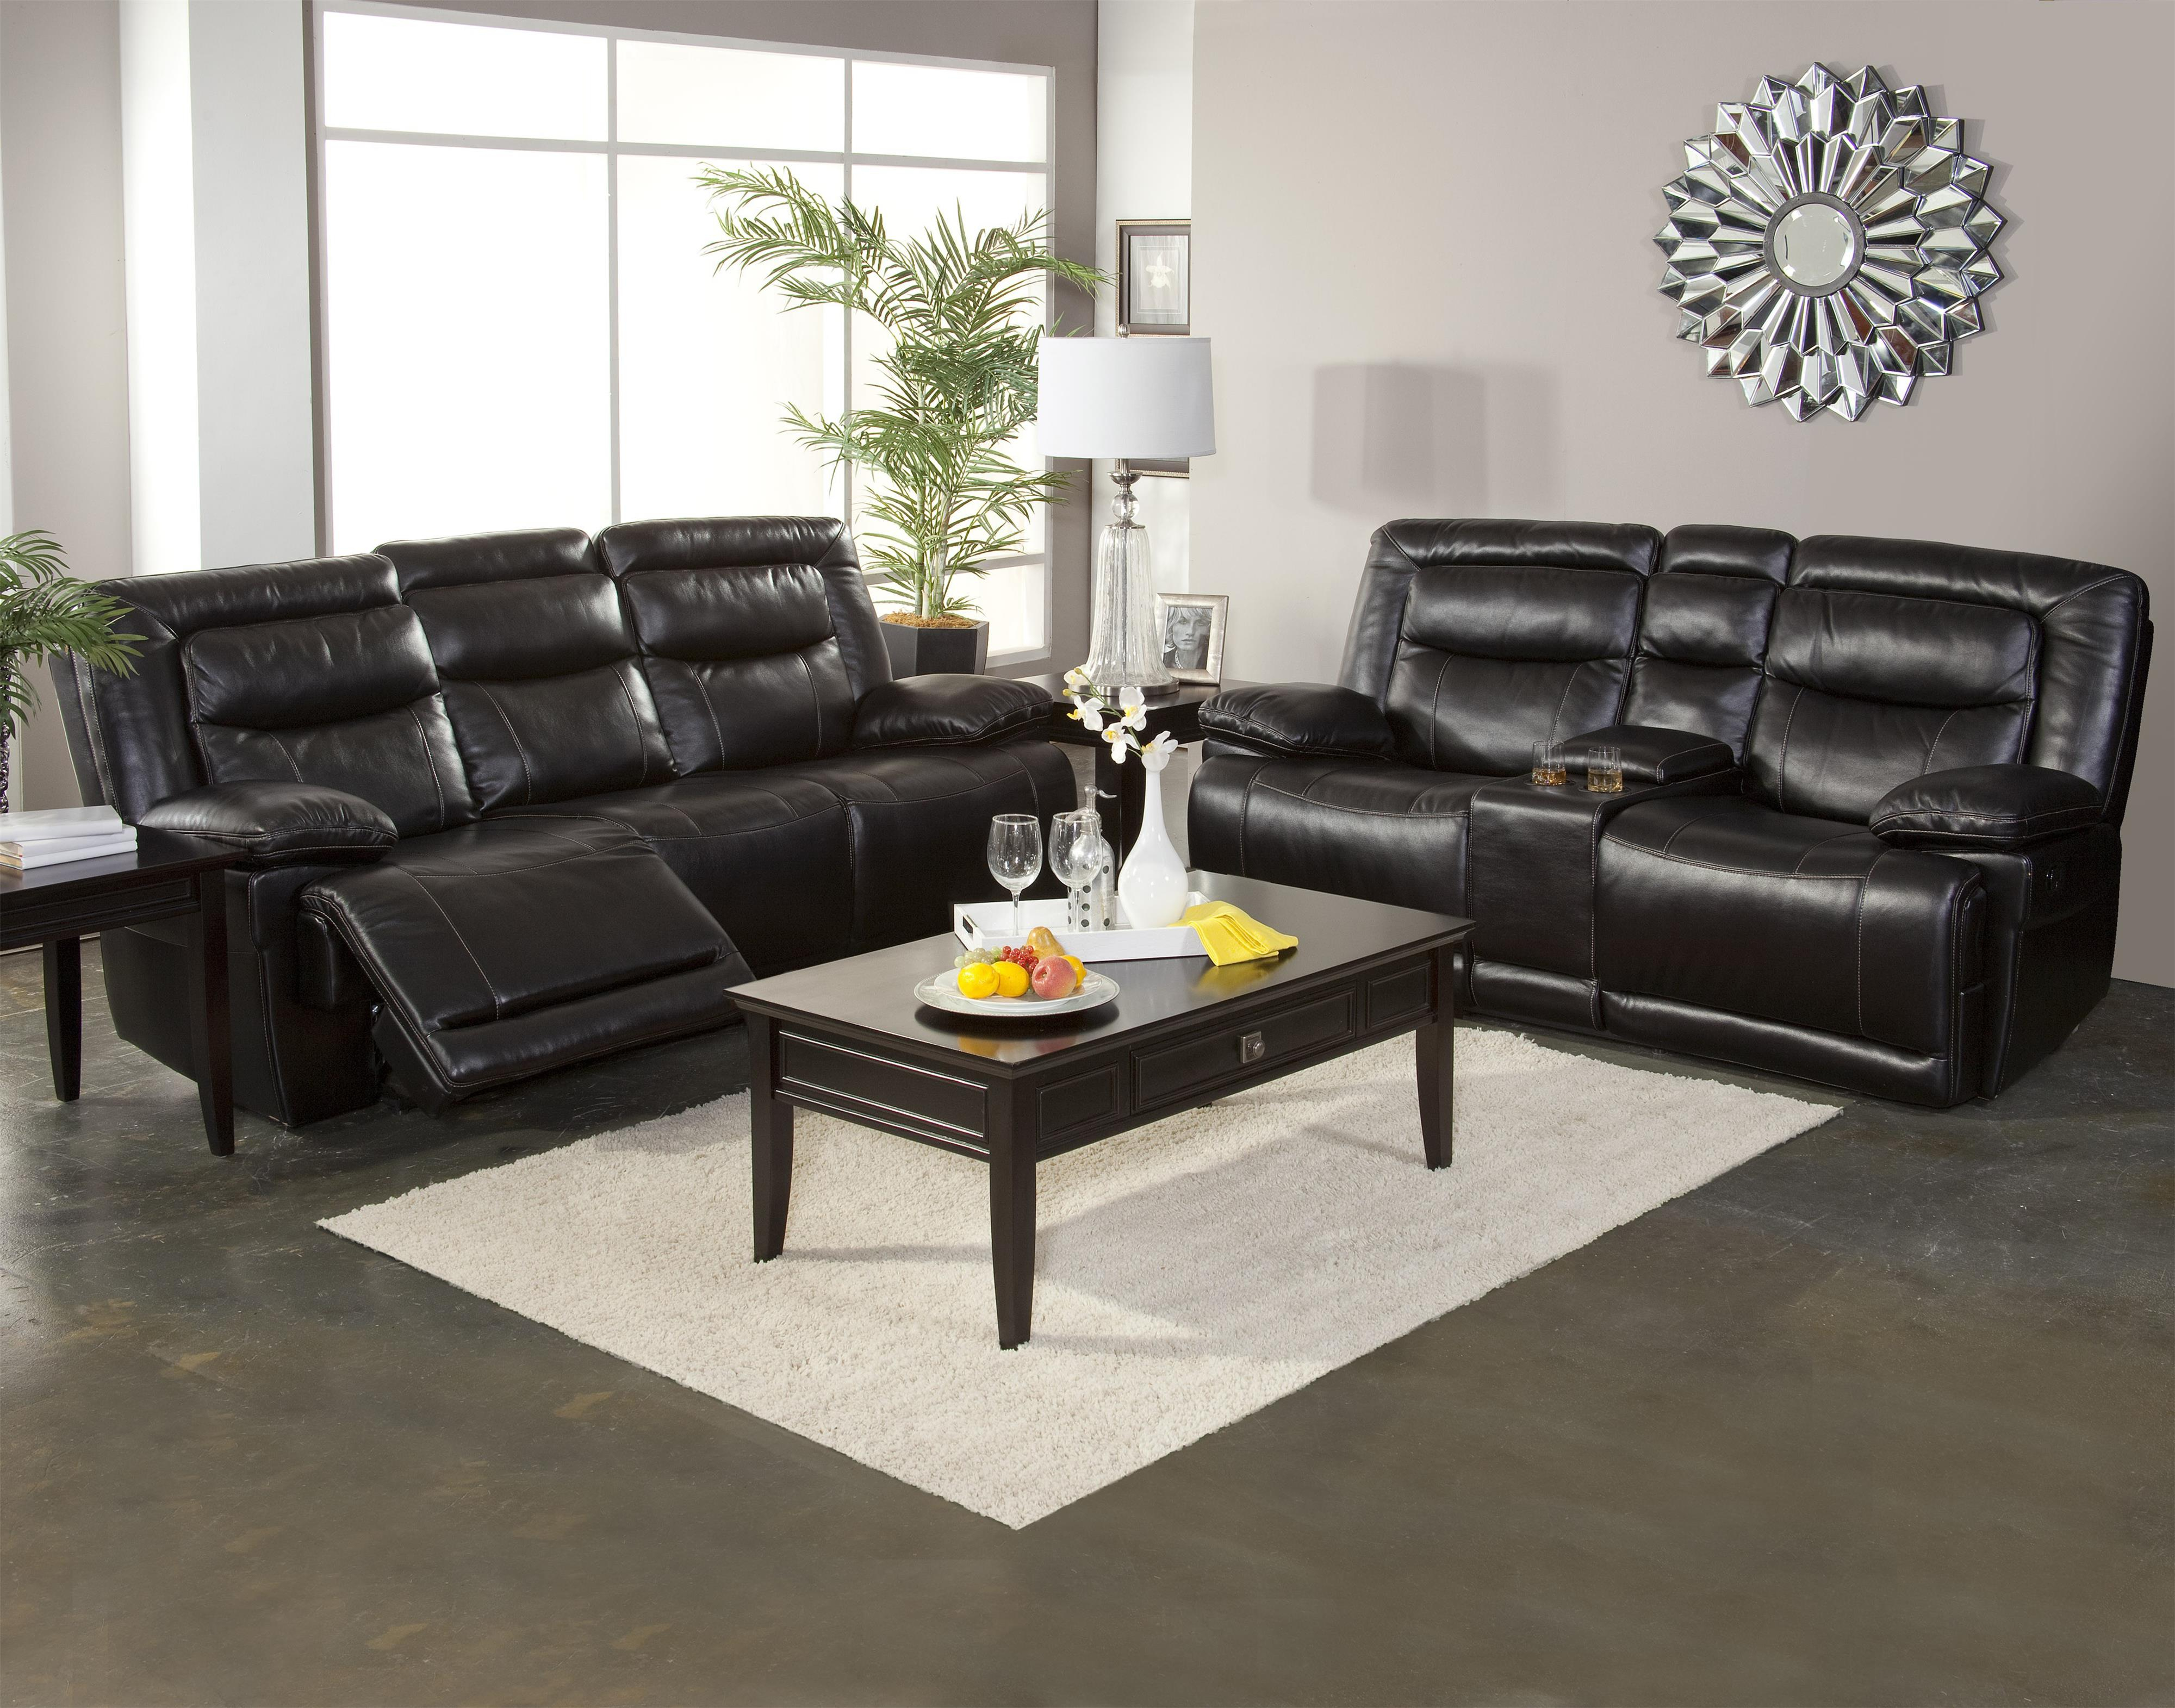 New Classic Torino Reclining Living Room Group Dunk Bright in 12 Smart Initiatives of How to Upgrade New Living Room Sets